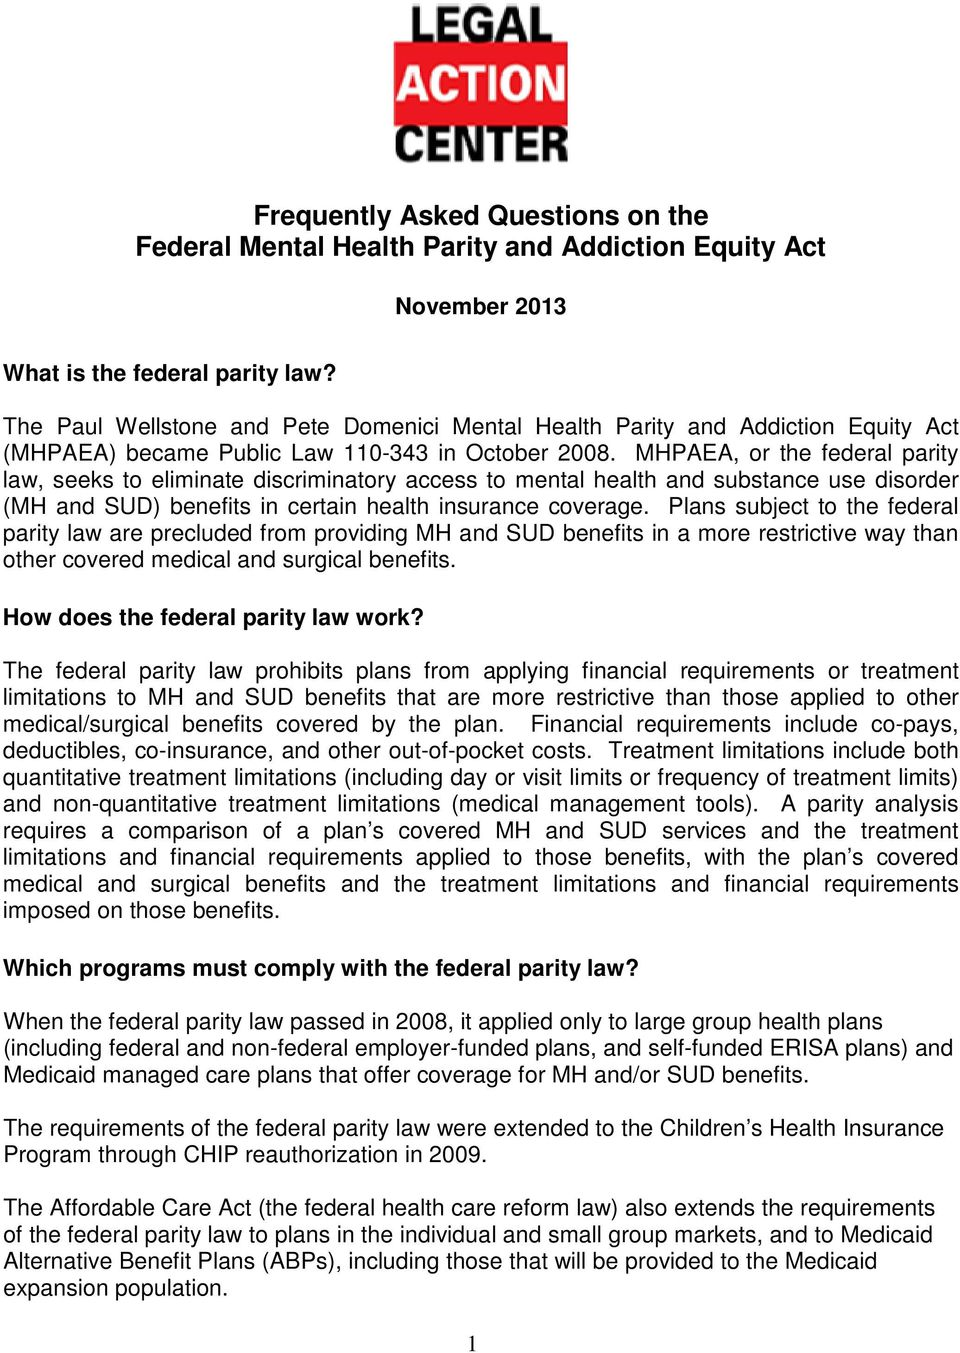 MHPAEA, or the federal parity law, seeks to eliminate discriminatory access to mental health and substance use disorder (MH and SUD) benefits in certain health insurance coverage.